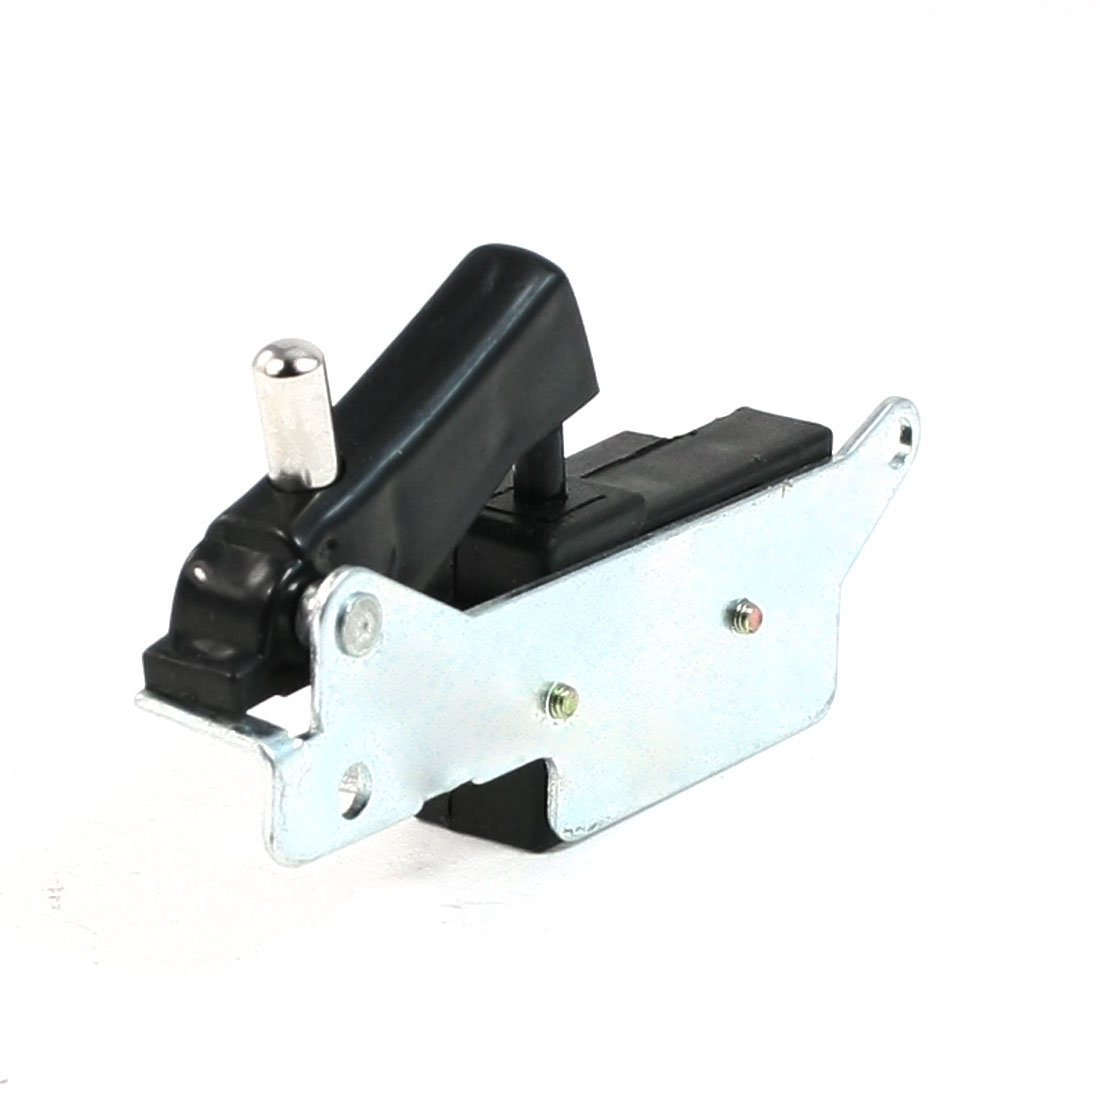 AC 250V/8A 125V/16A SPST Manual Lock on Electric Tool Trigger Switch